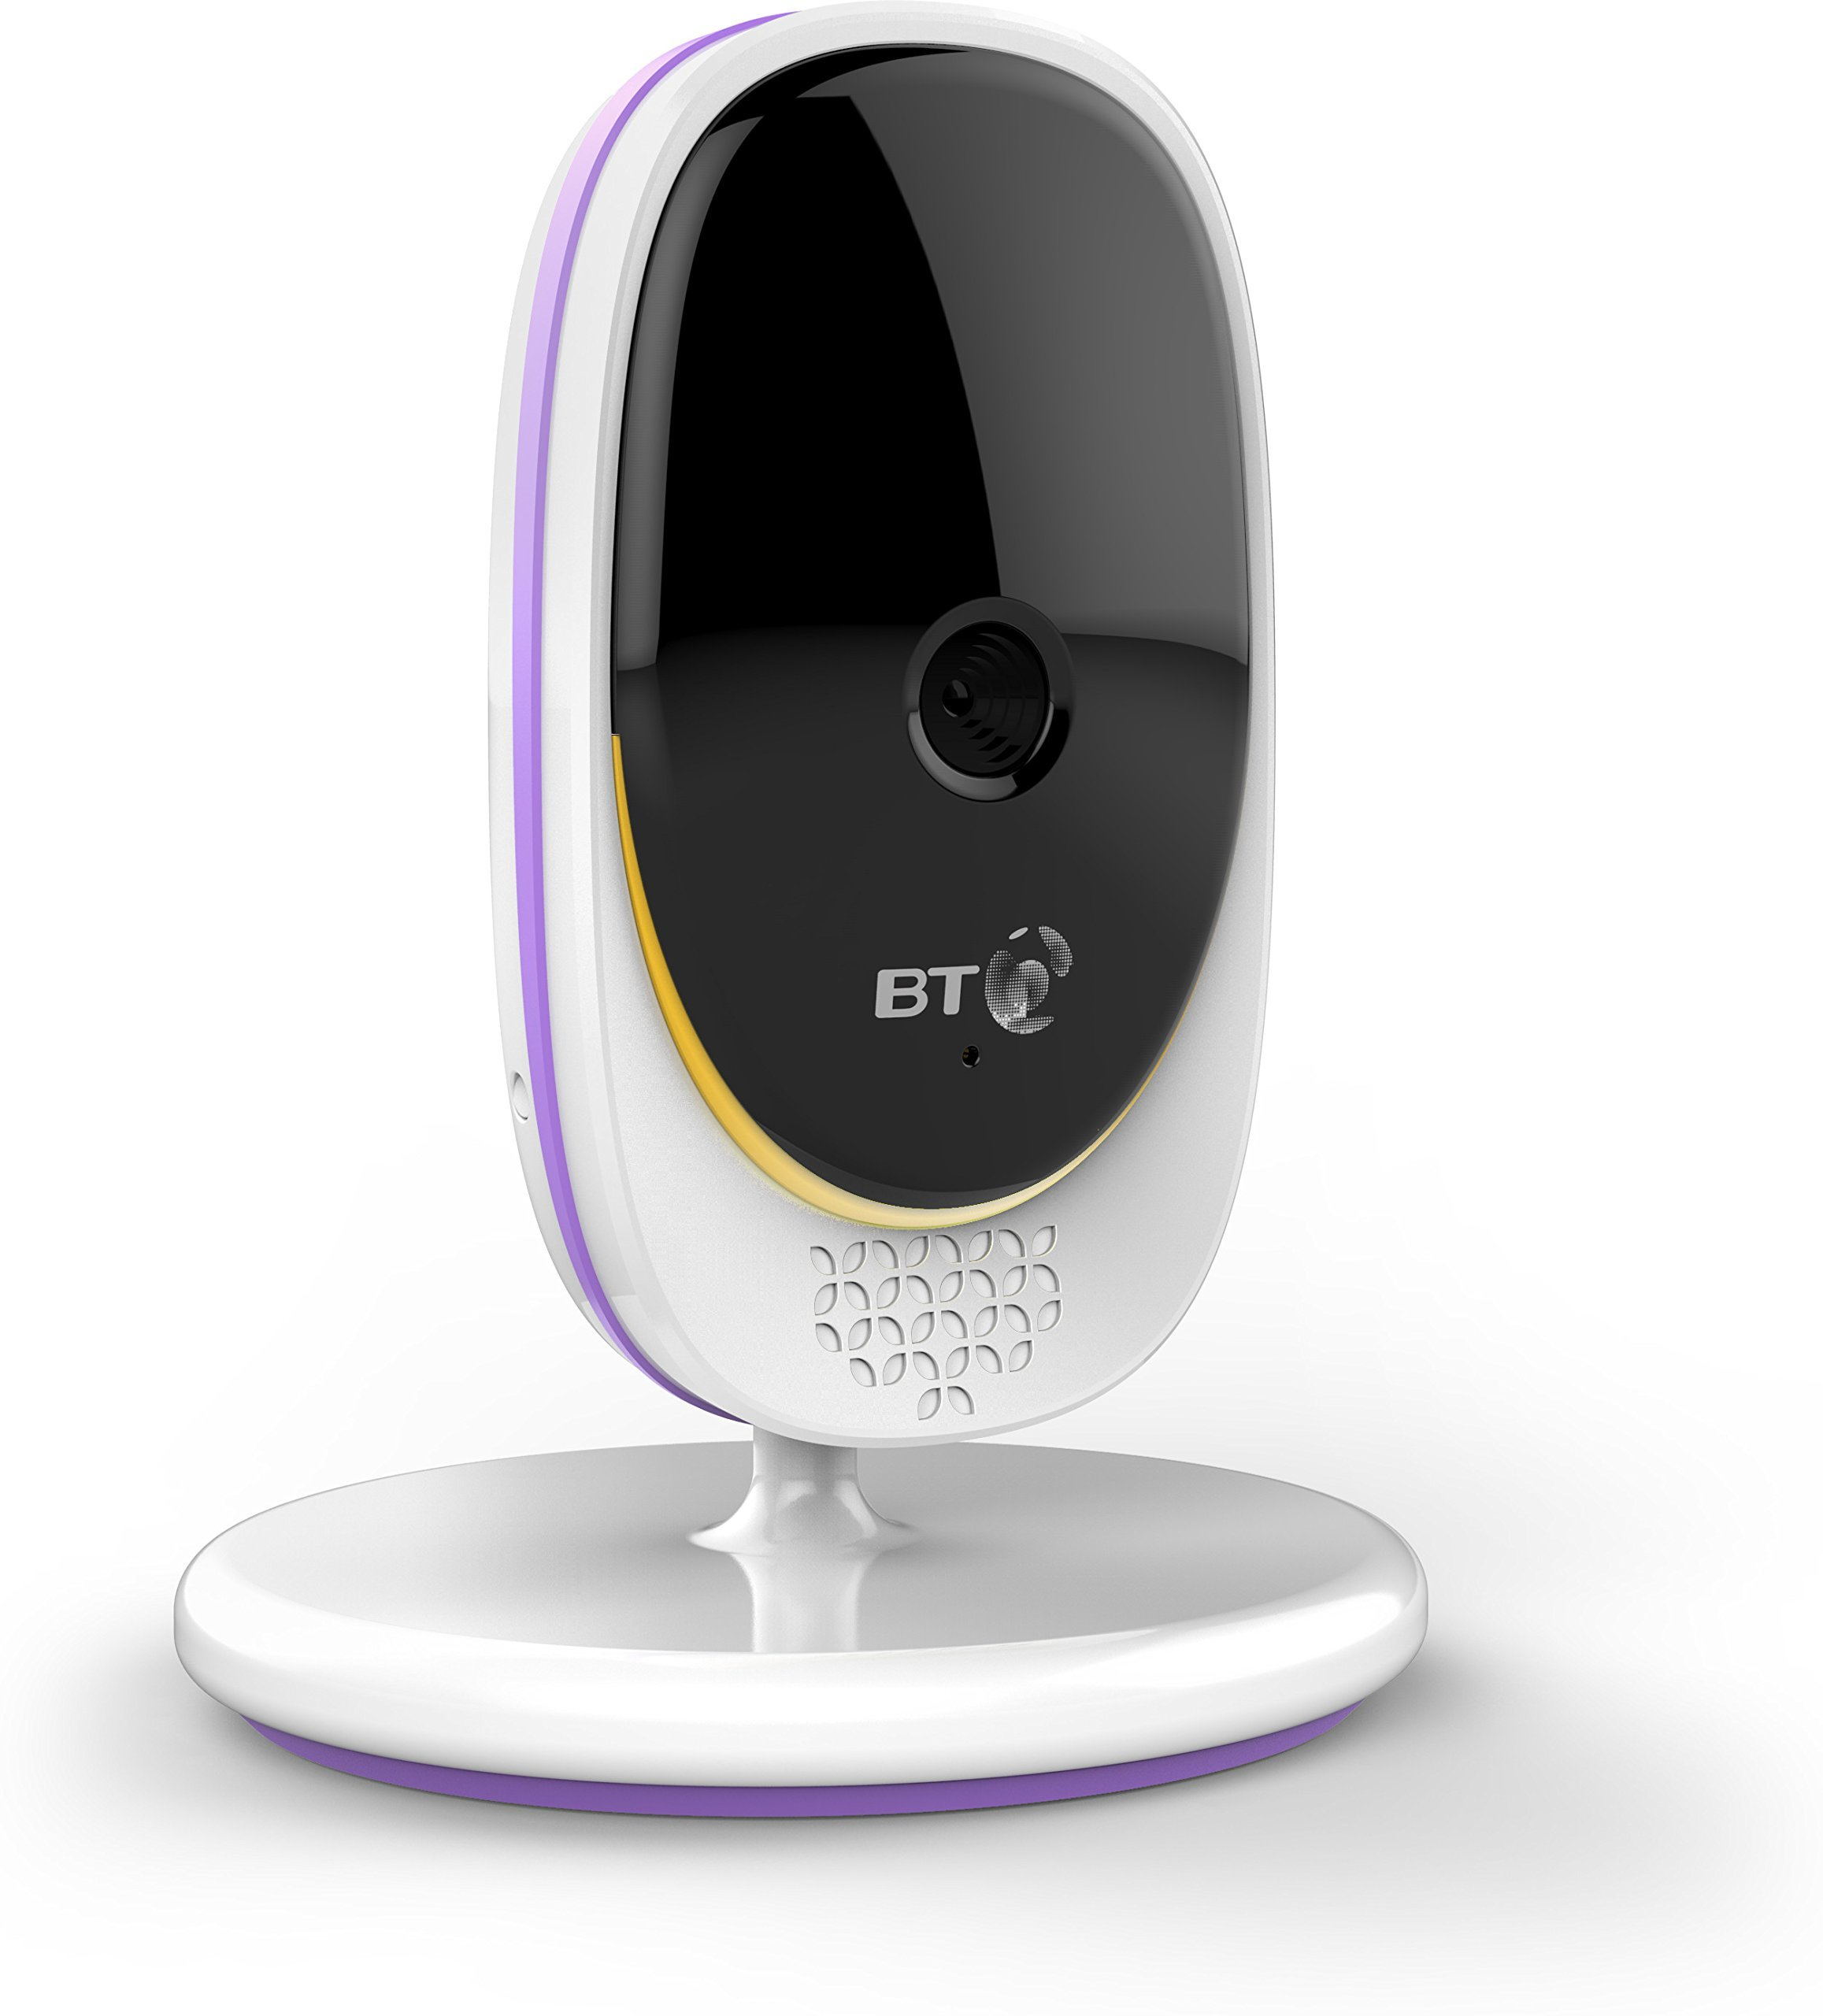 BT Video Baby Monitor 2000 (Certified Refurbished)